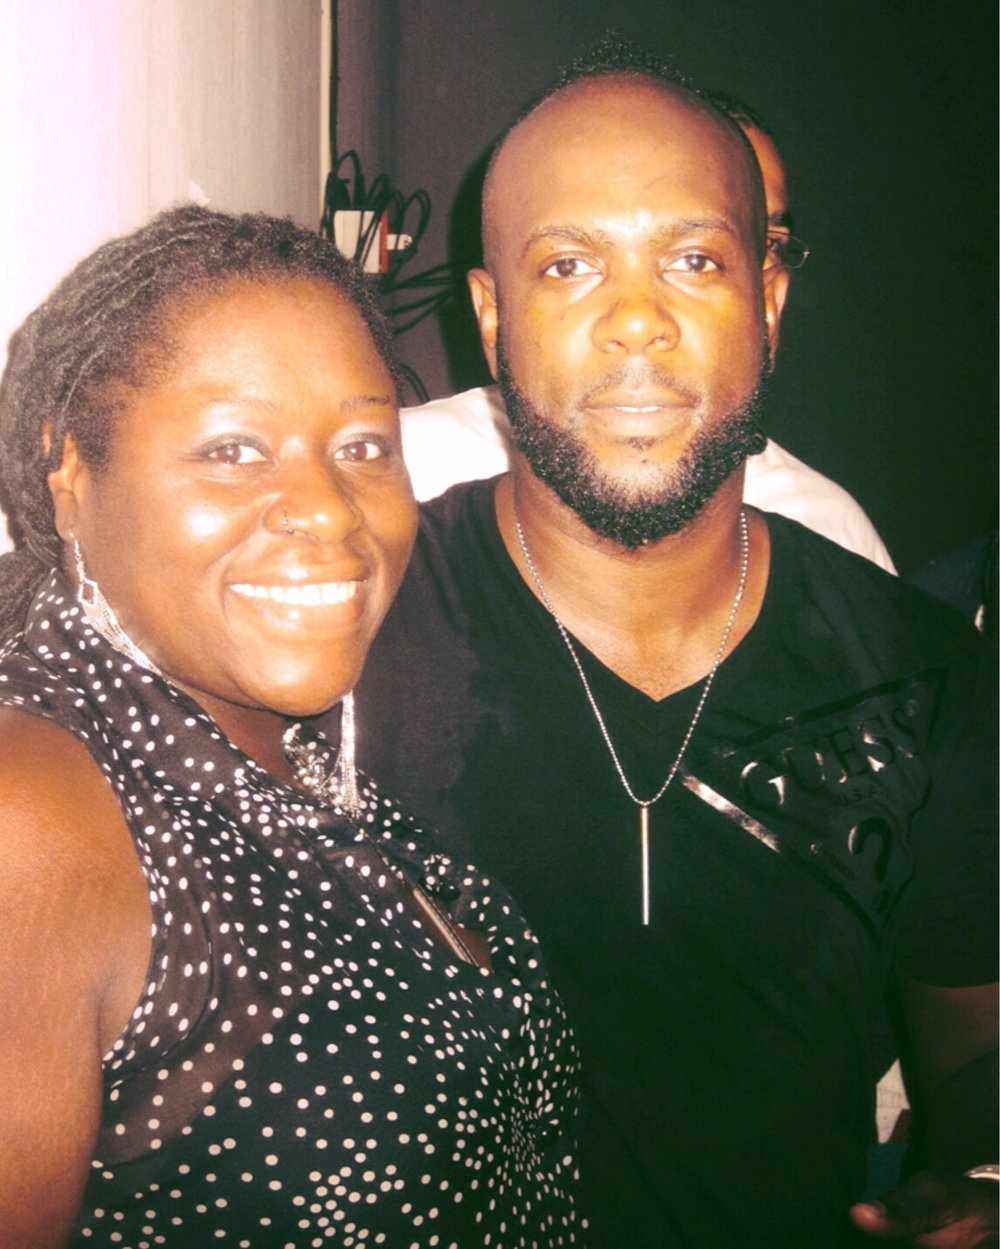 DysChick and The Viking, Bunji Garlin at Flash (Miami edition)